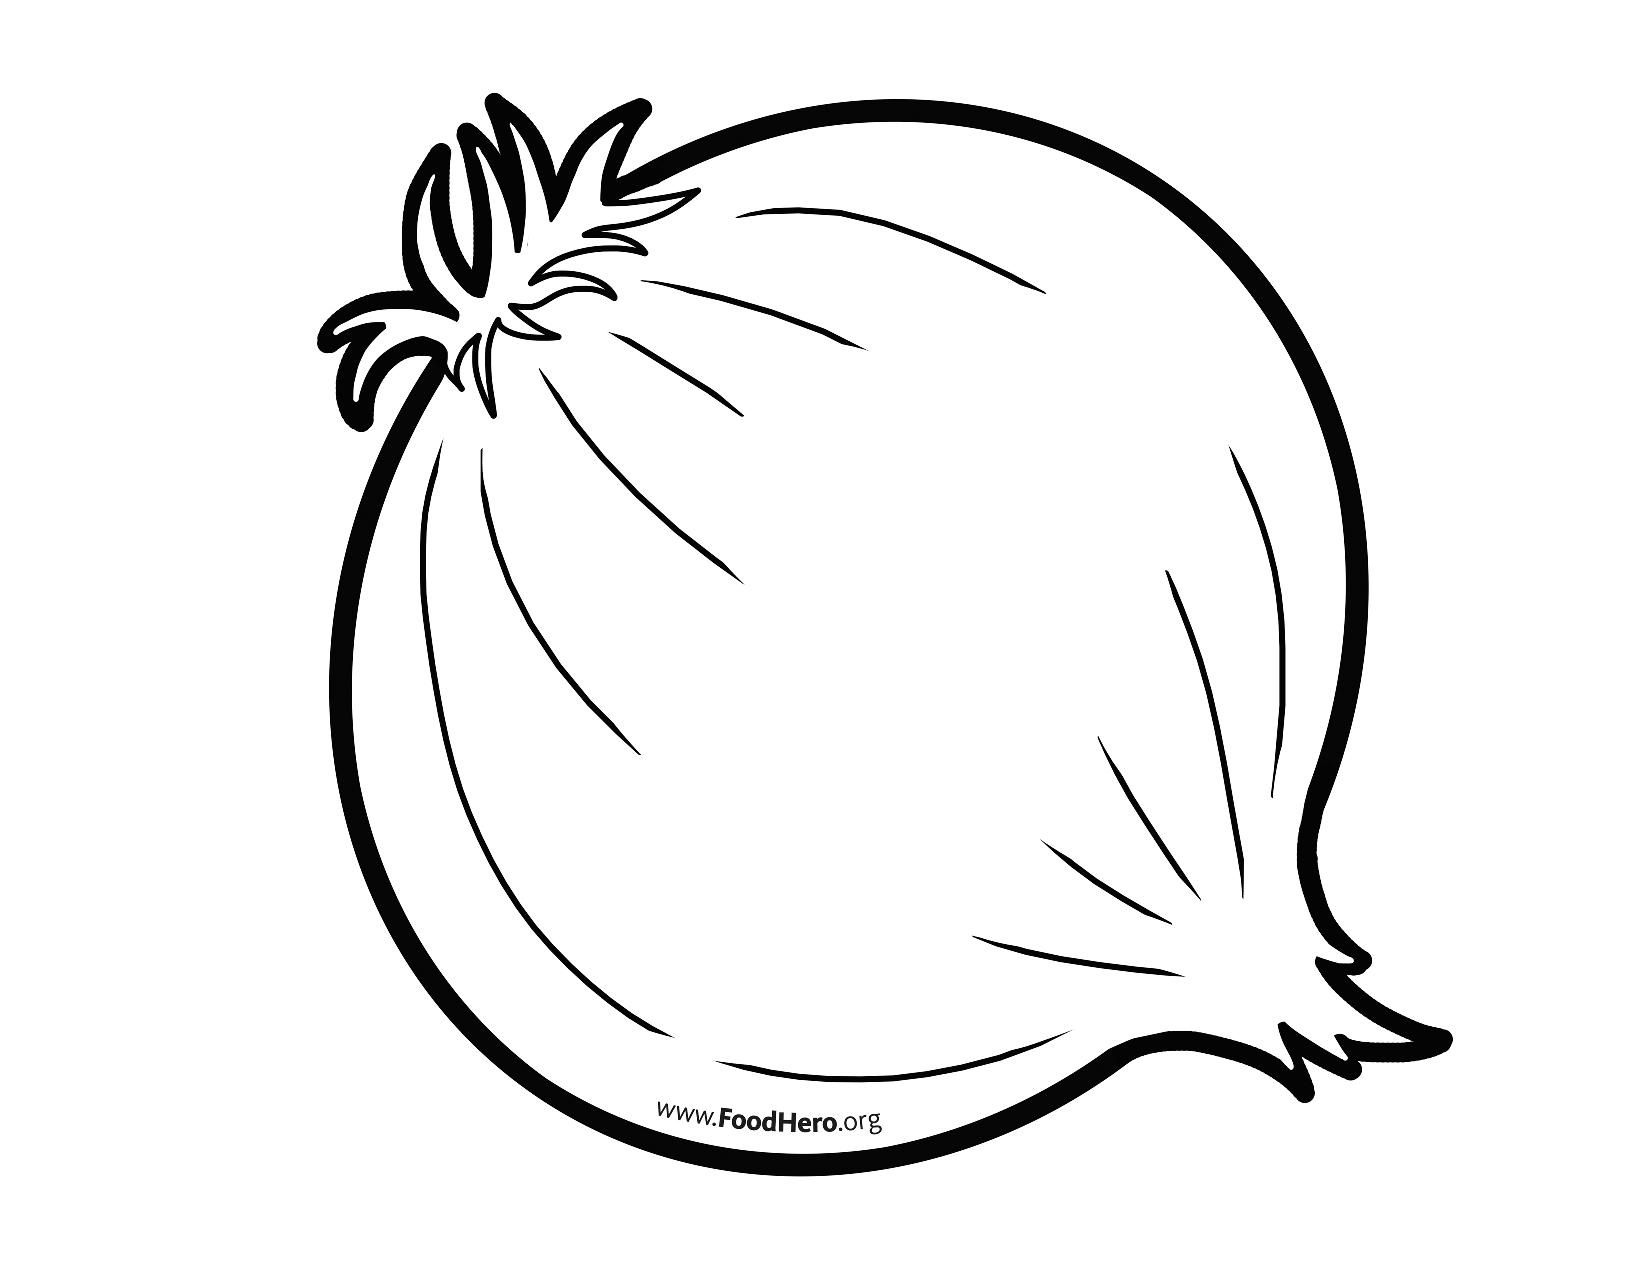 Veggie Coloring Book 2020 Vegetable Coloring Pages Vegetable